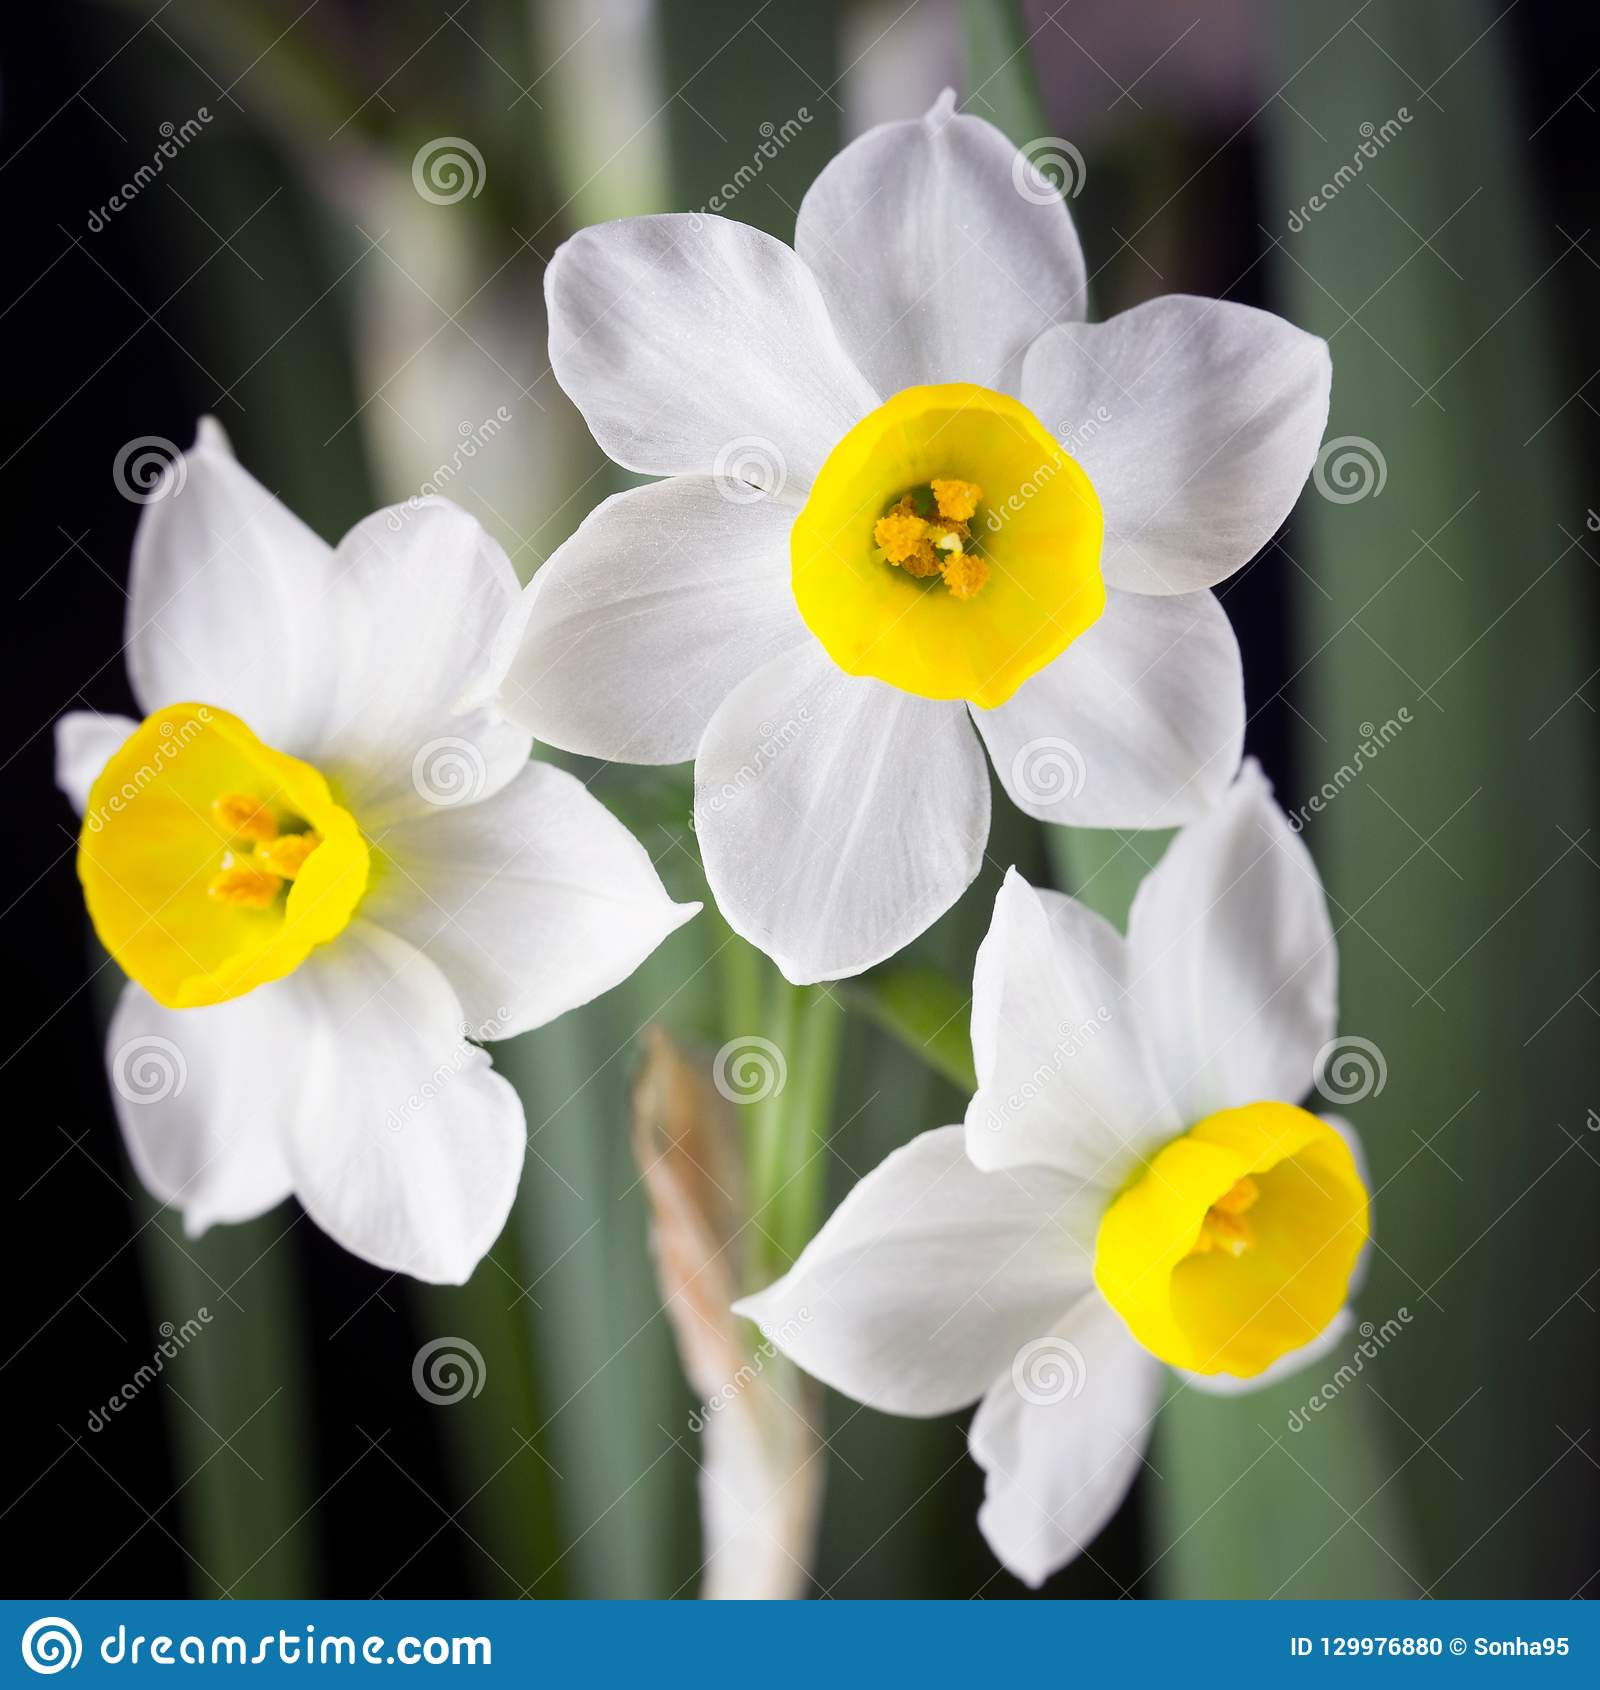 Narcissus Is A Beautiful Flower Stock Photo